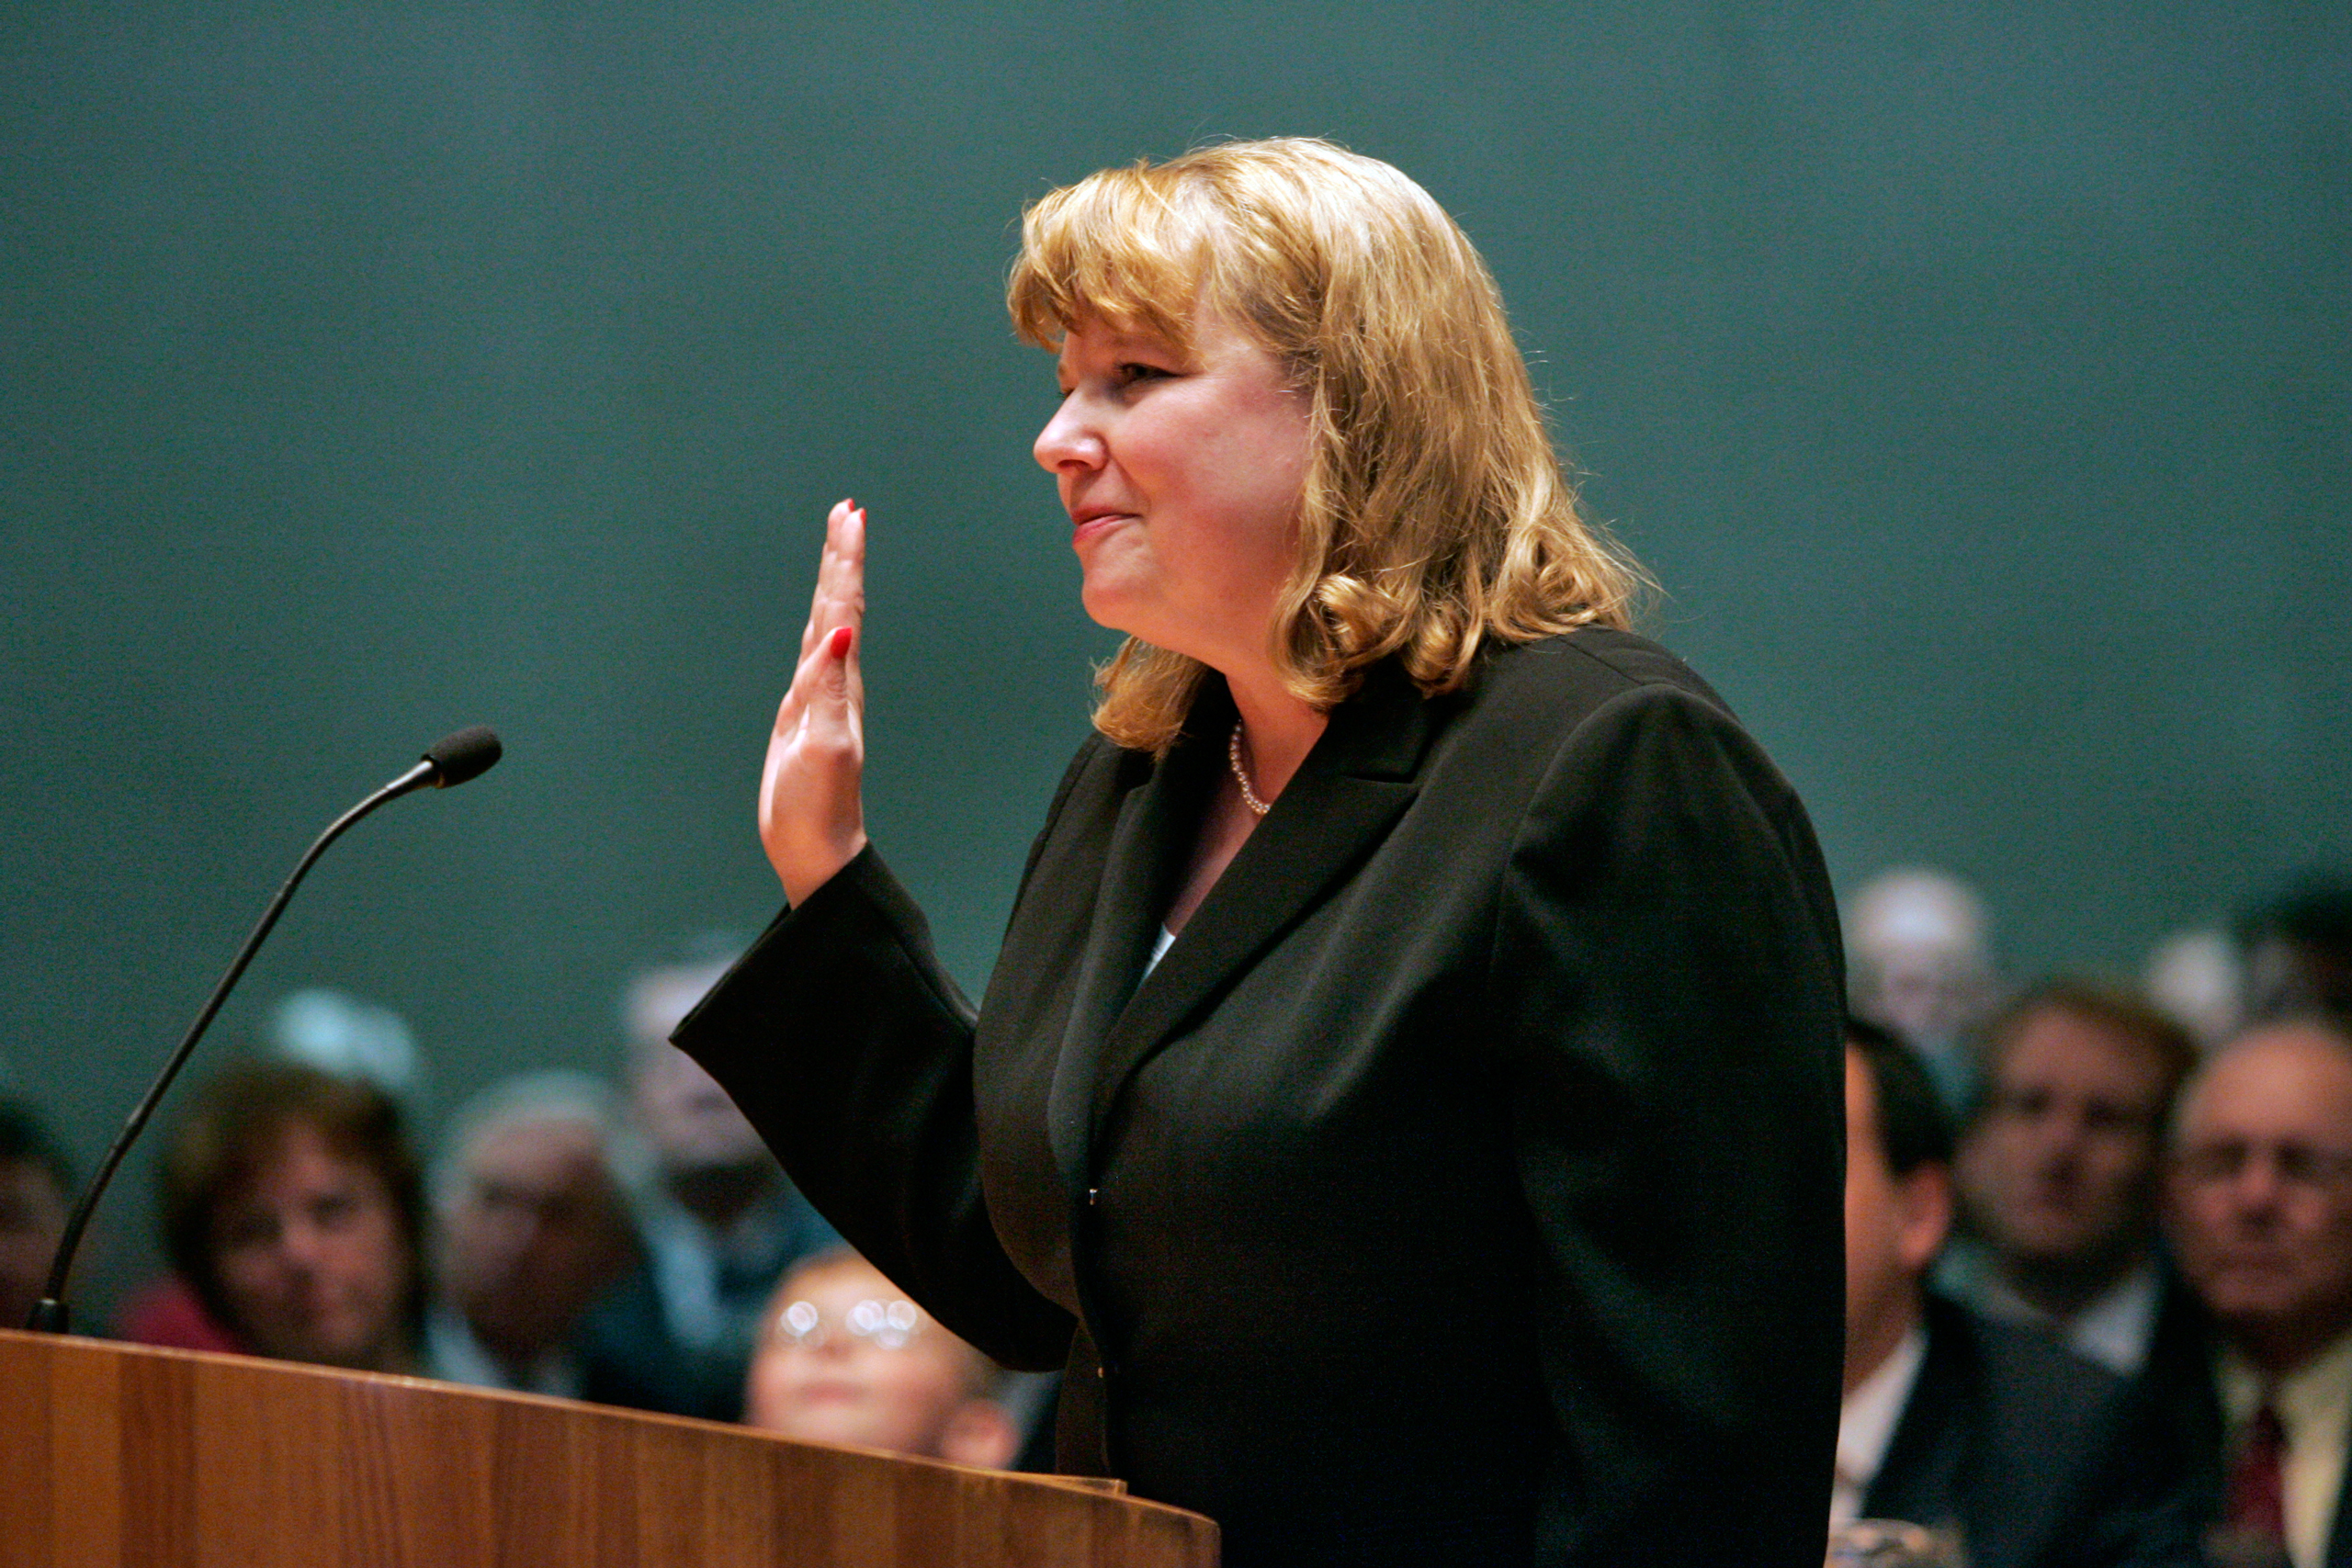 FILE - In this March 13, 2006 file photo, Allison Eid is sworn in as chief justice of the Colorado Supreme Court in Denver. Presumptive Republican presidential nominee Donald Trump has released a list of 11 potential Supreme Court justices he plans to vet to fill the seat of late Justice Antonin Scalia. (AP Photo/Linda McConnell, Pool, File)